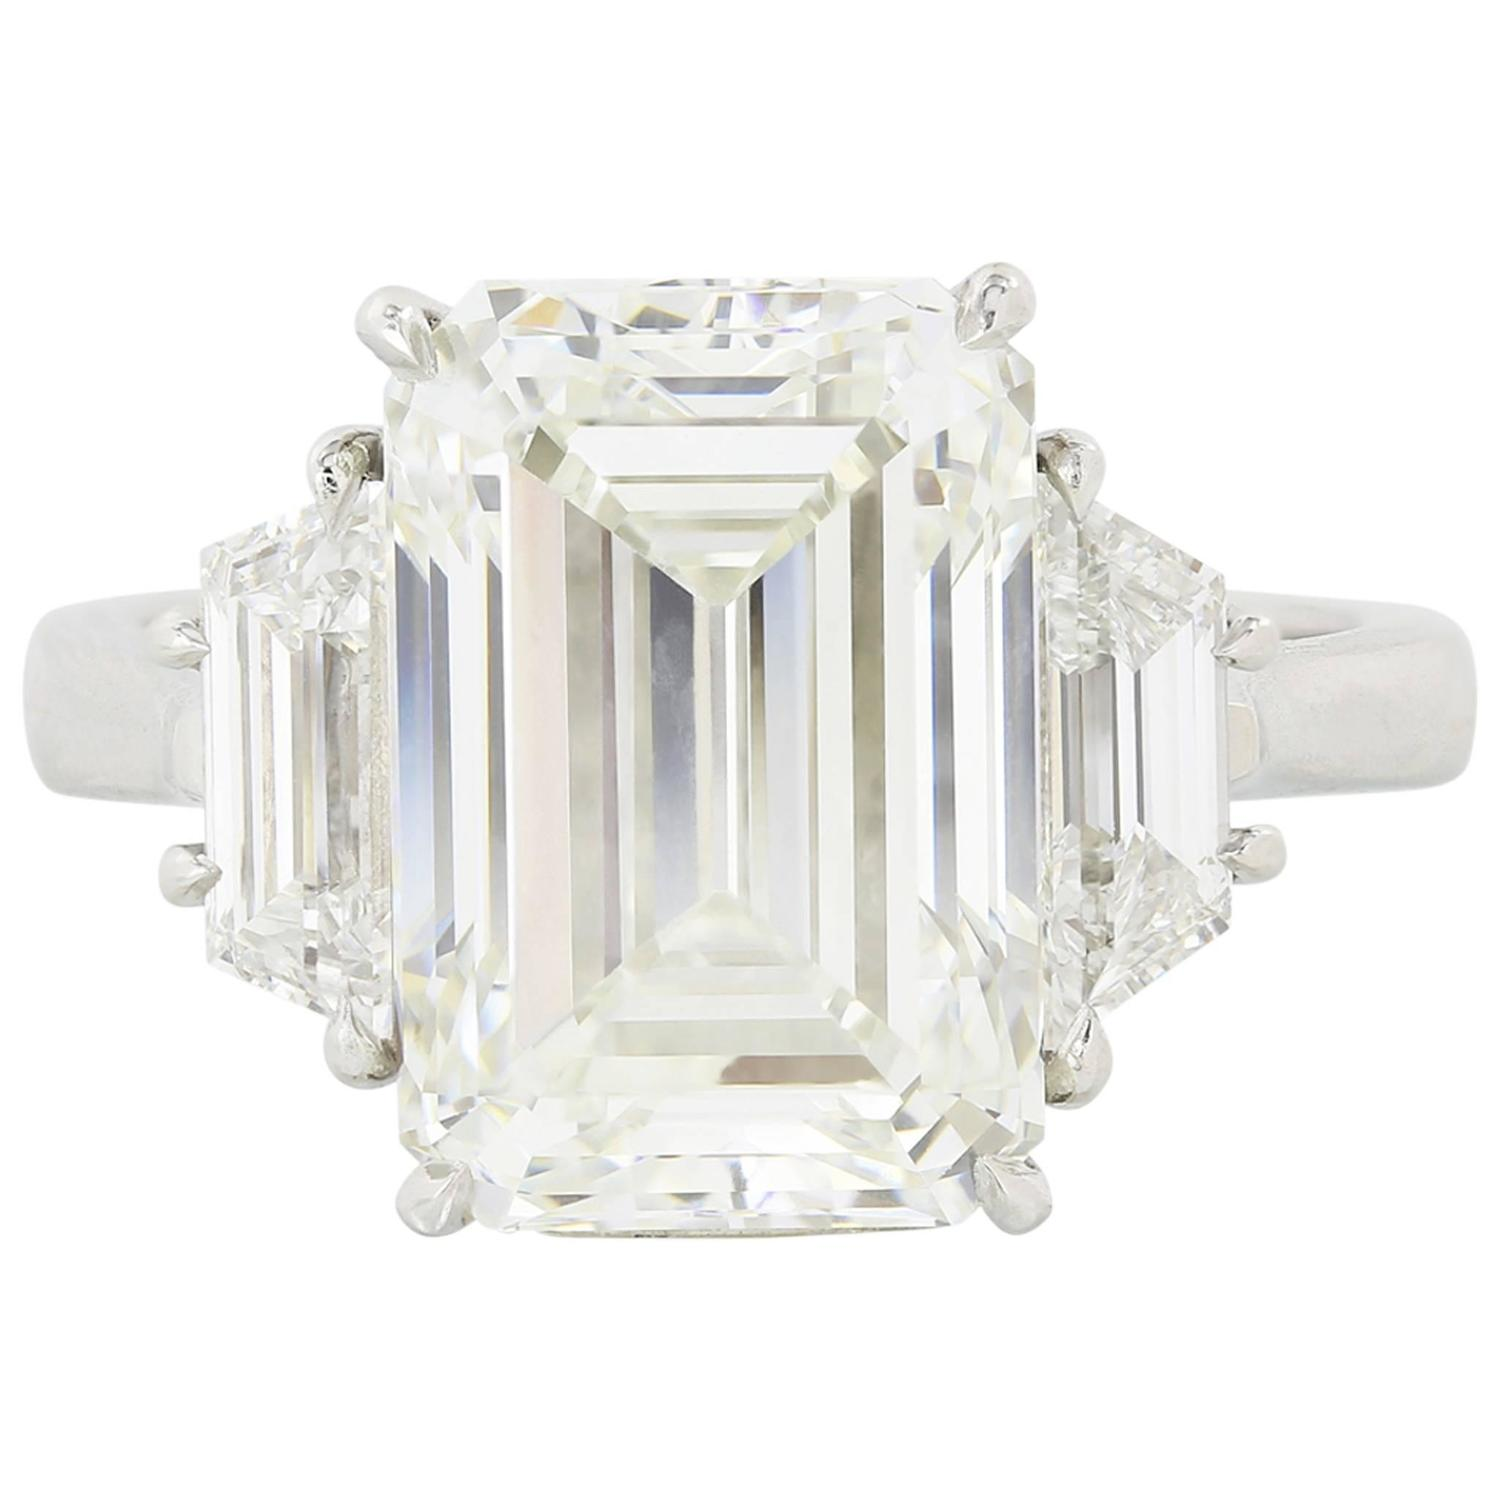 6 01 Carat GIA Cert Emerald Cut Diamond Platinum Three Stone Engagement Ring